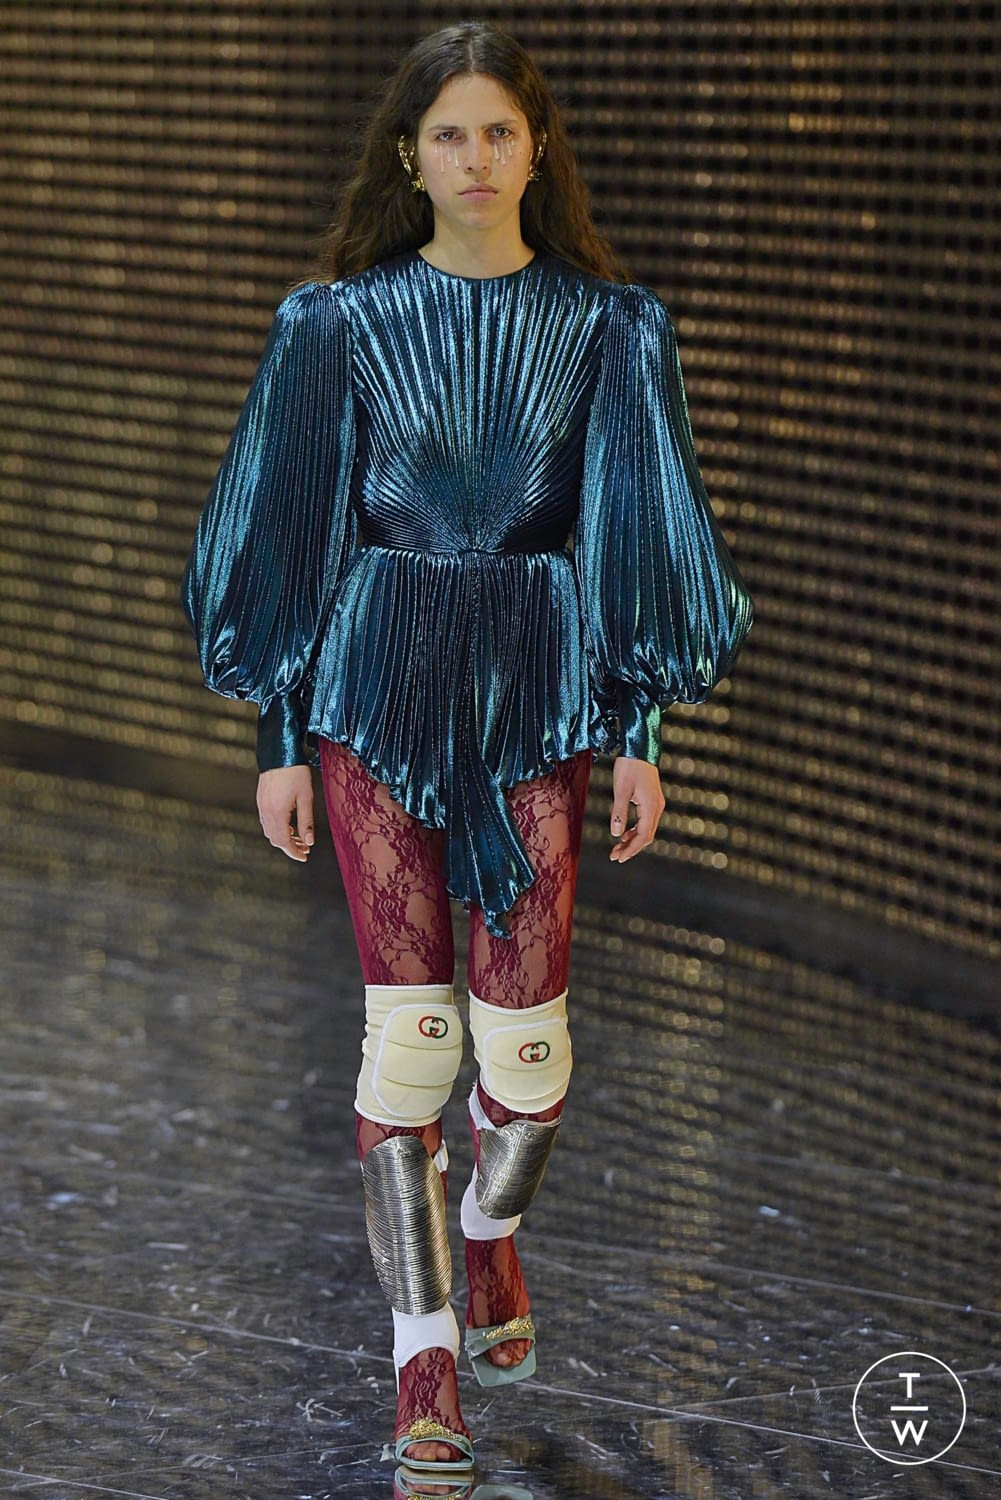 fcccb8336aa Gucci Fall Winter 2019 Look 77. gucci aw19 0077.jpg